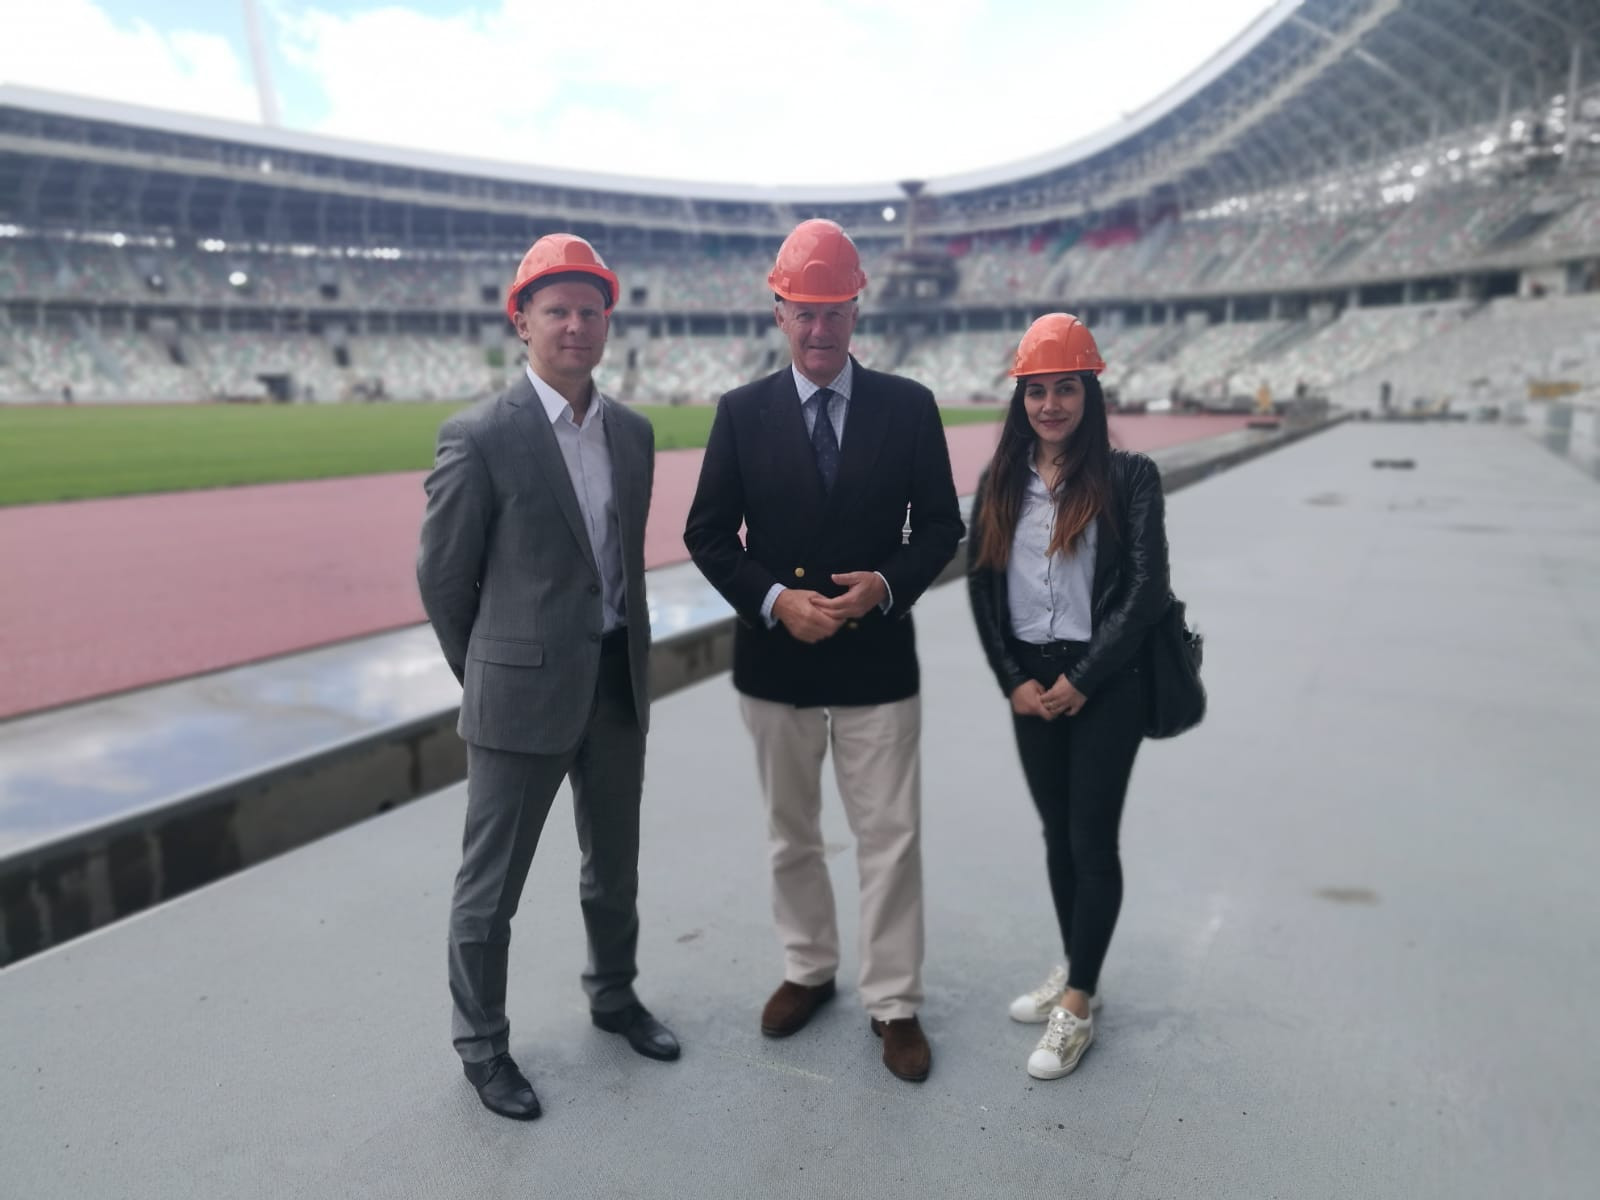 Executive director Clegg concludes first official visit to Minsk prior to 2019 European Games